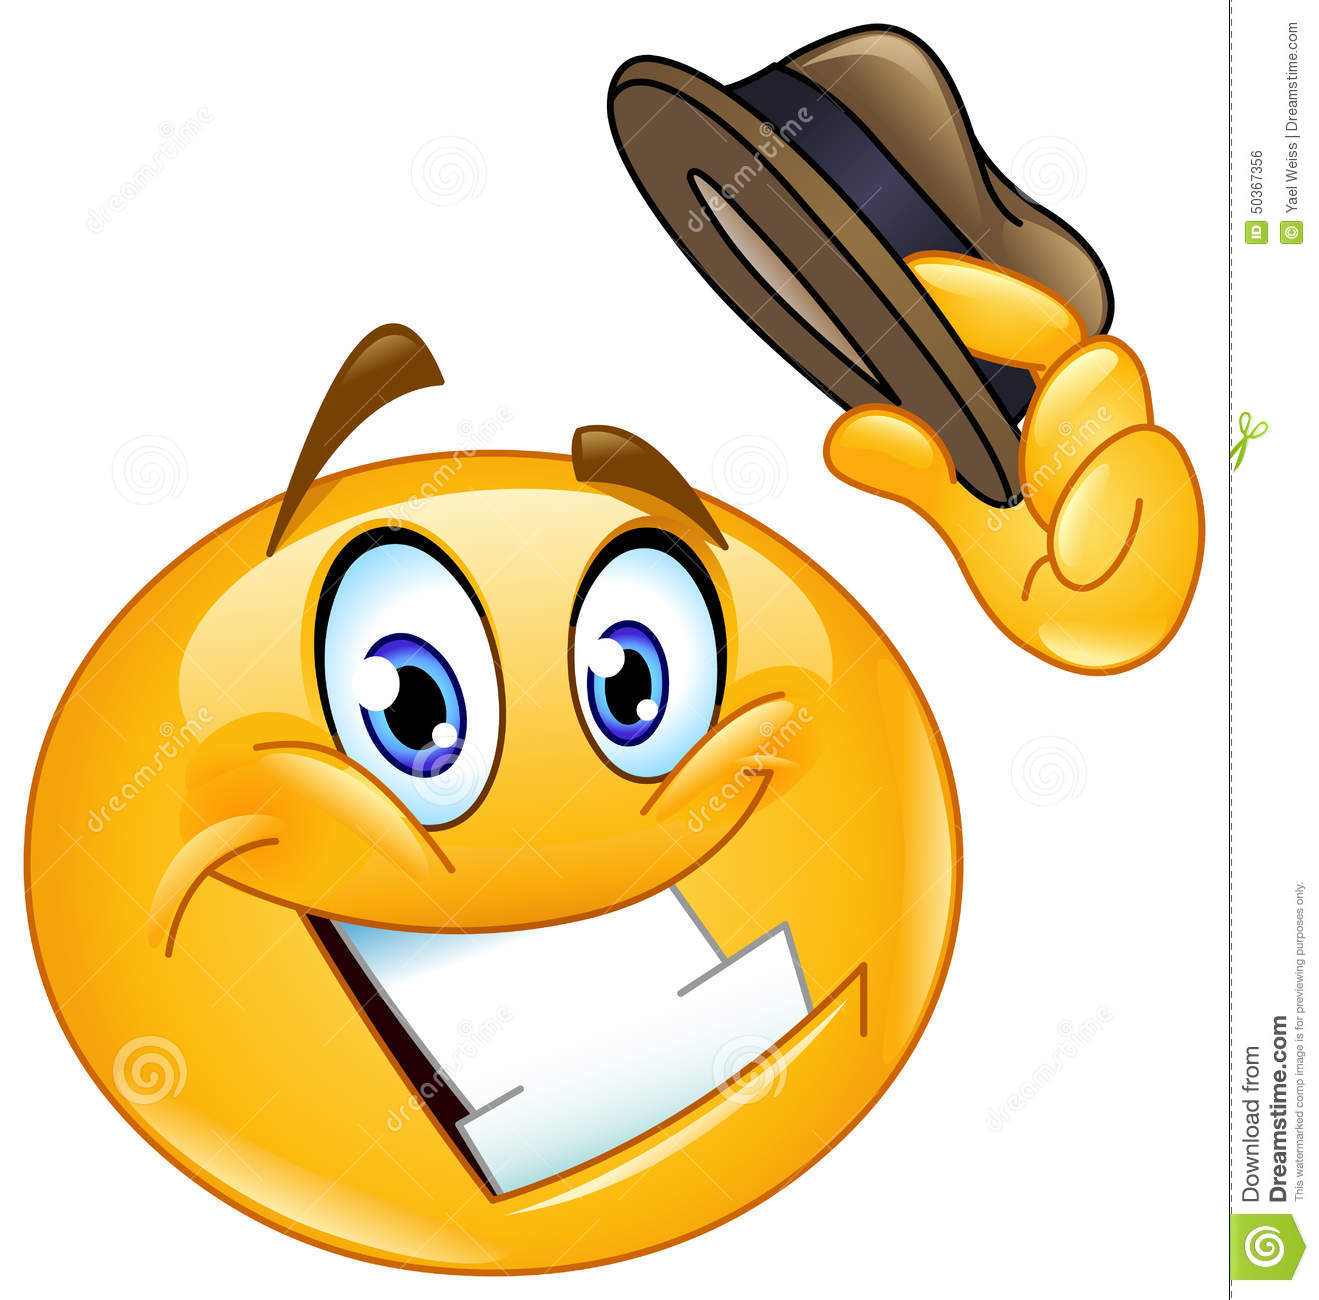 Hat Tip Emoticon Stock Vector - Image: 50367356